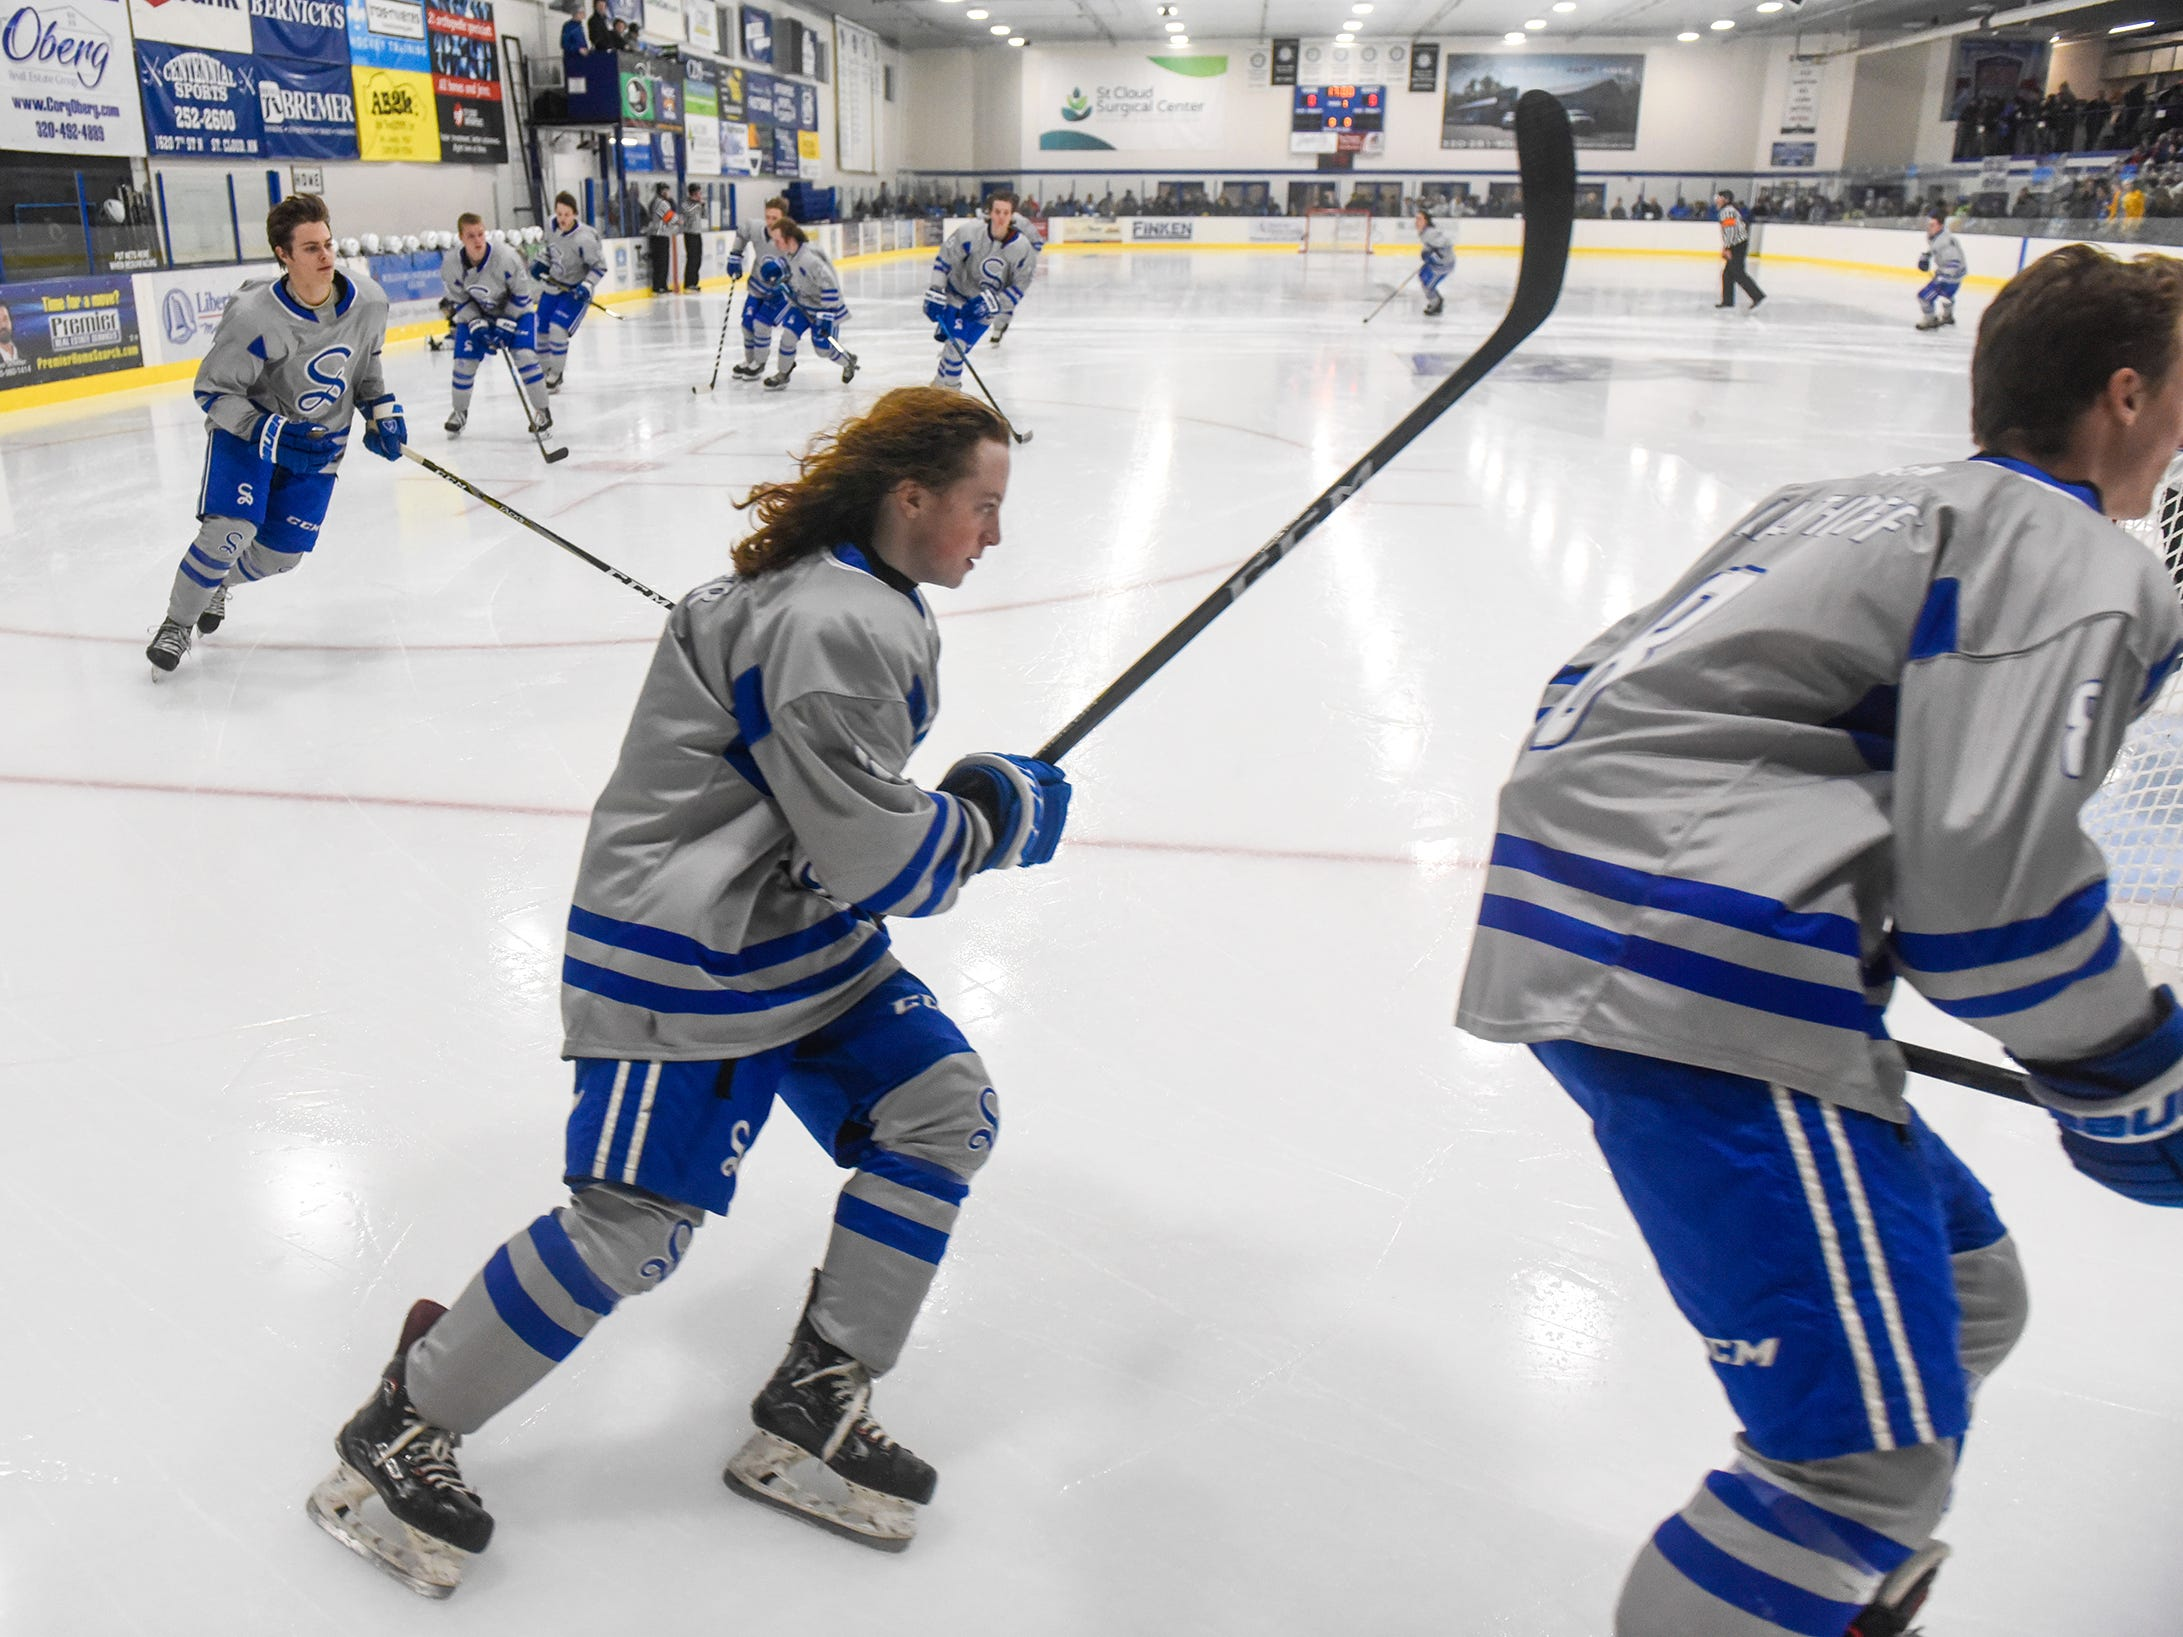 Sartell players take the ice for the Thursday, Jan. 10, game against Cathedral at Bernicks Arena in Sartell.